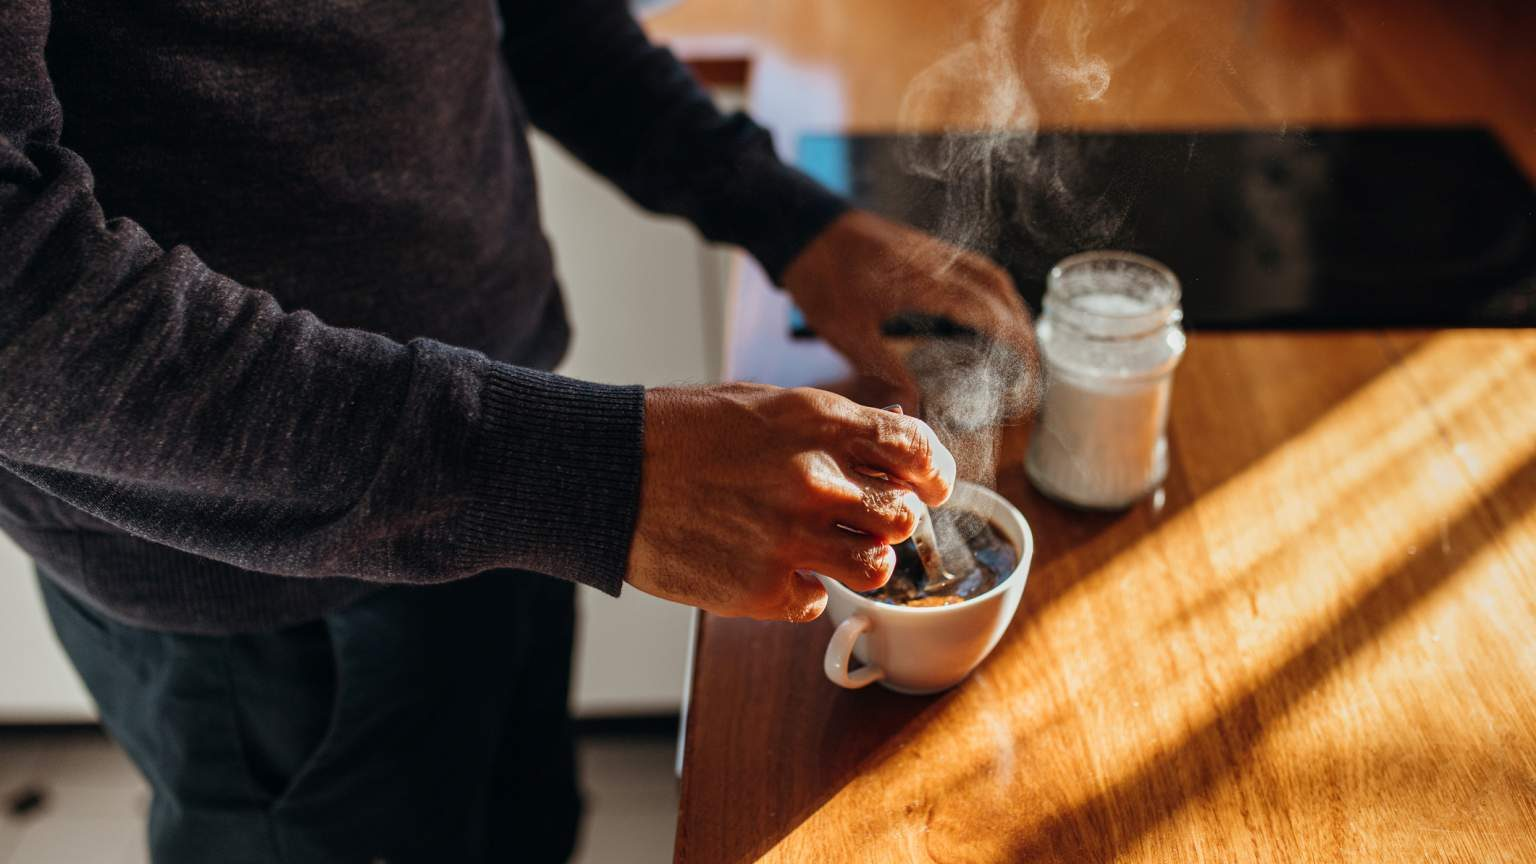 Australian man makes a cup of steaming hot coffee for himself